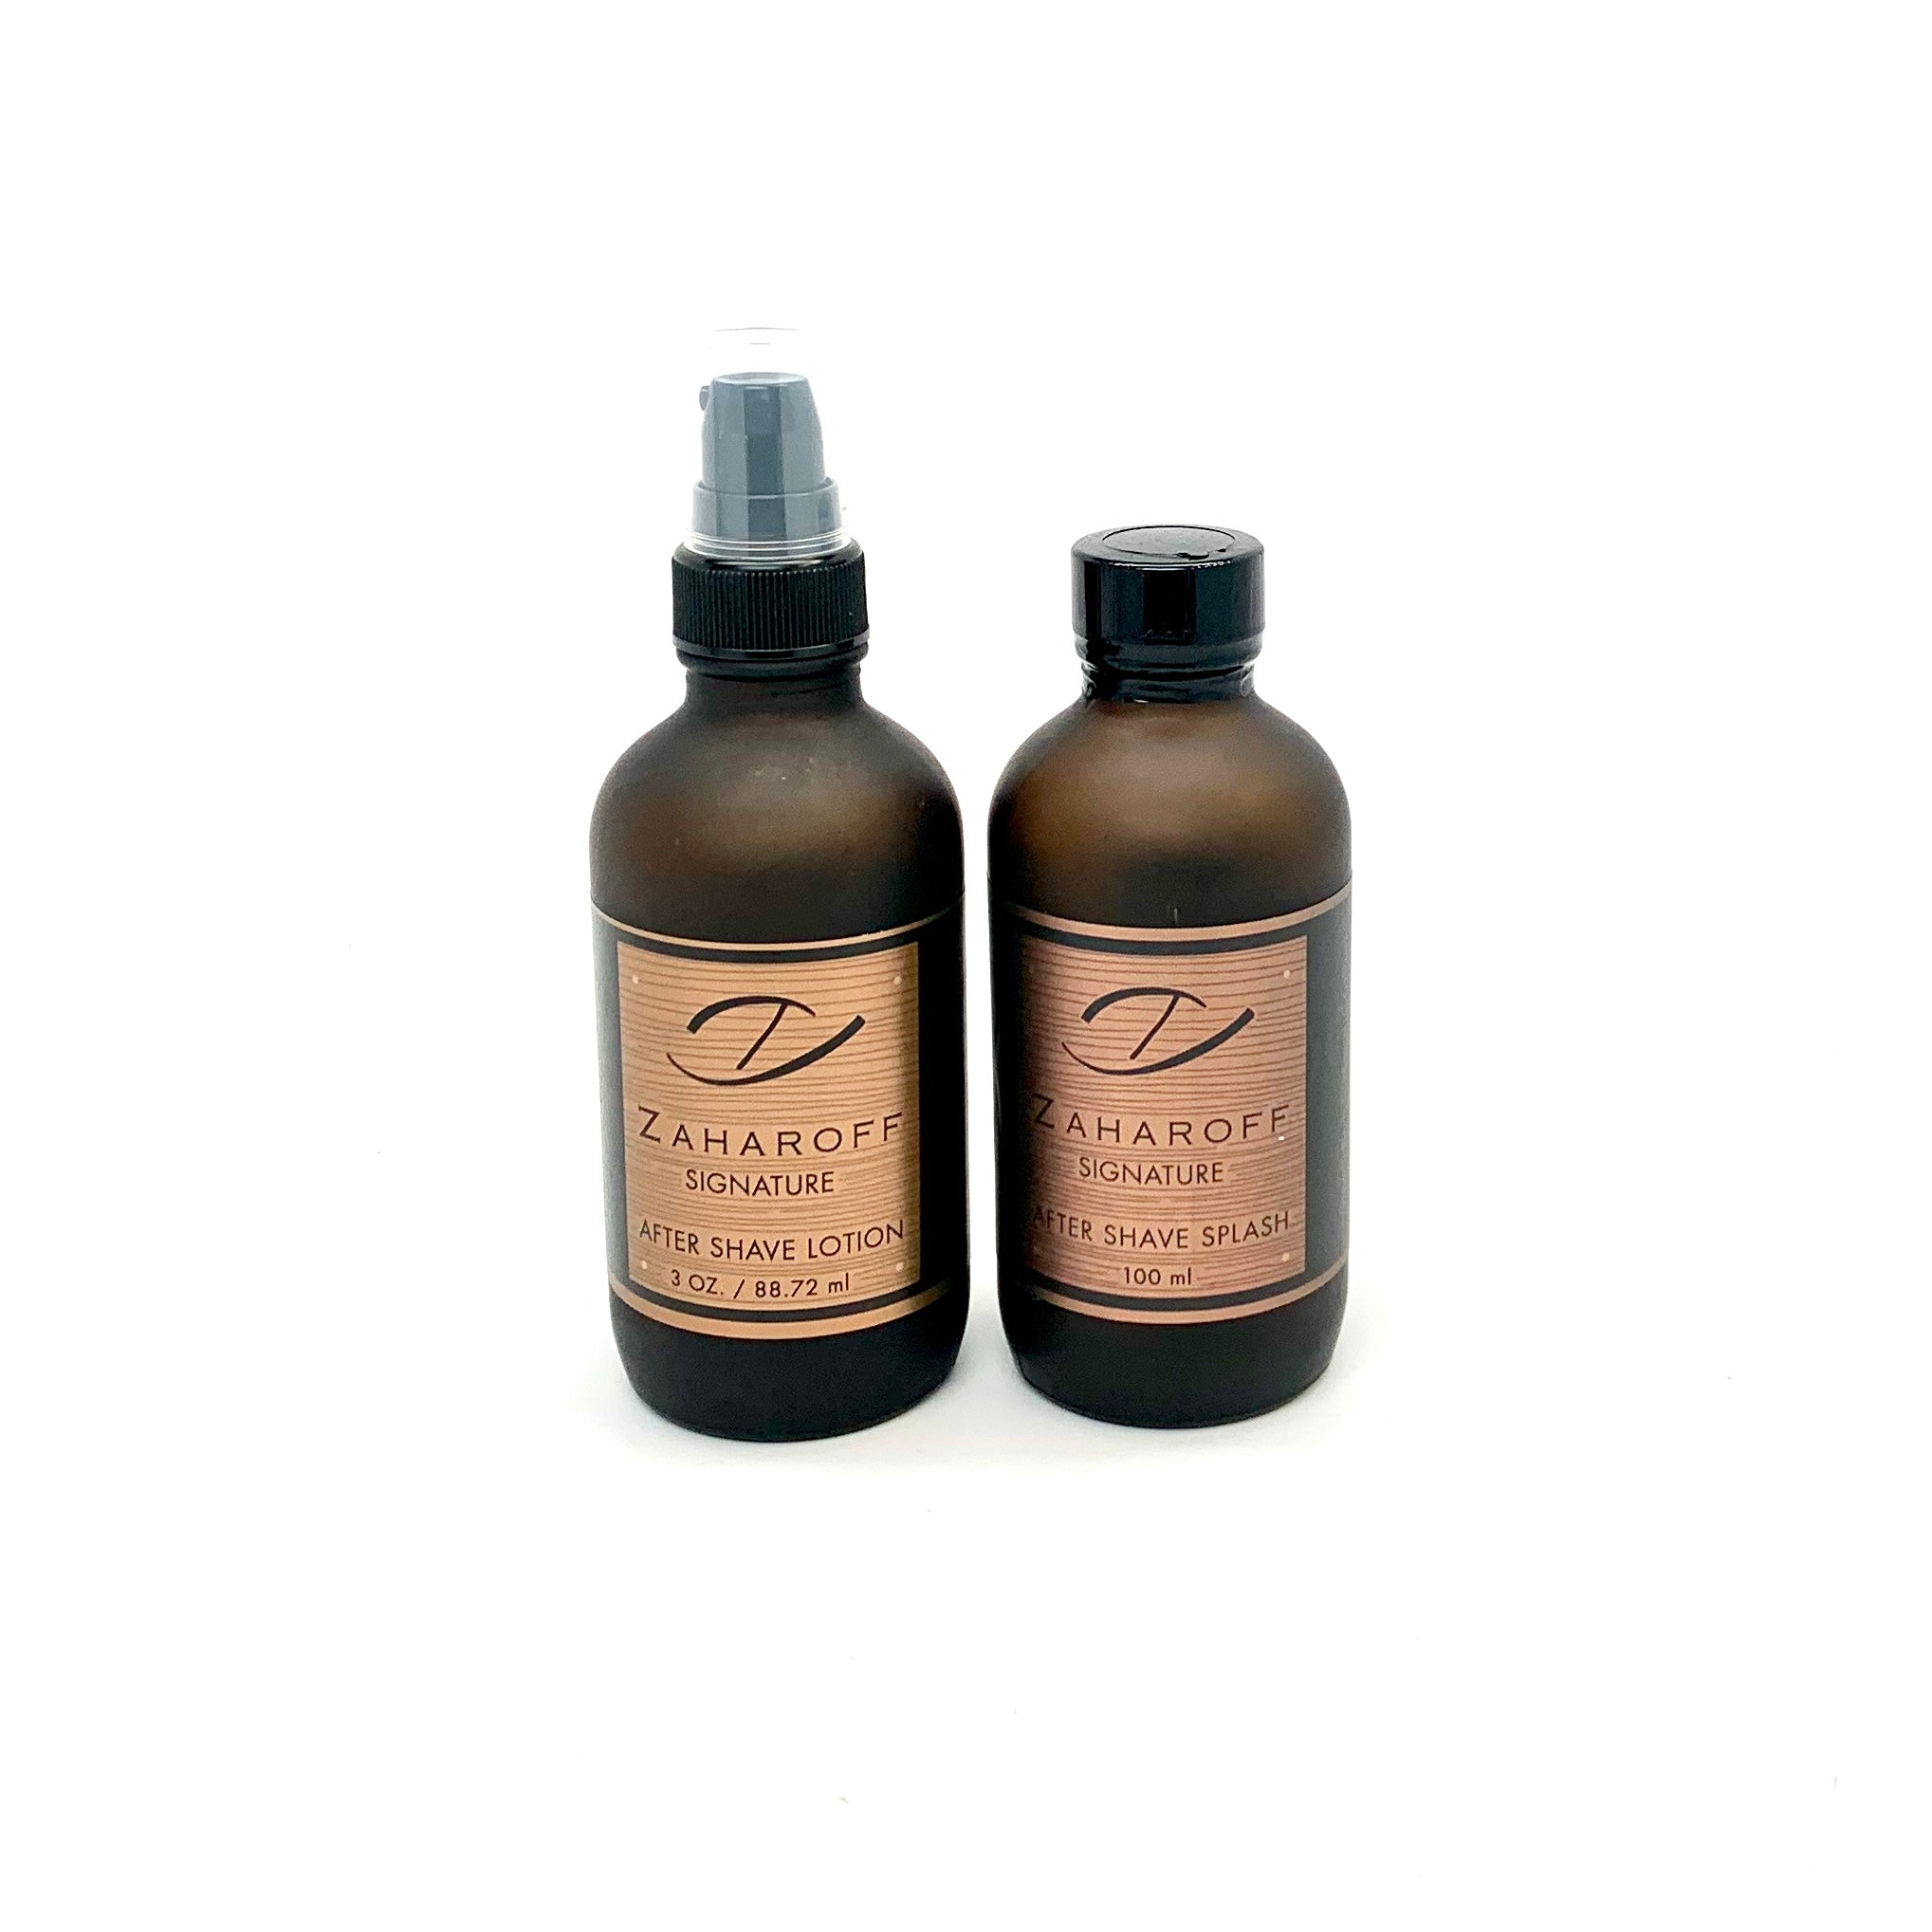 Zaharoff Signature Aftershave Splash  + Aftershave Lotion Set